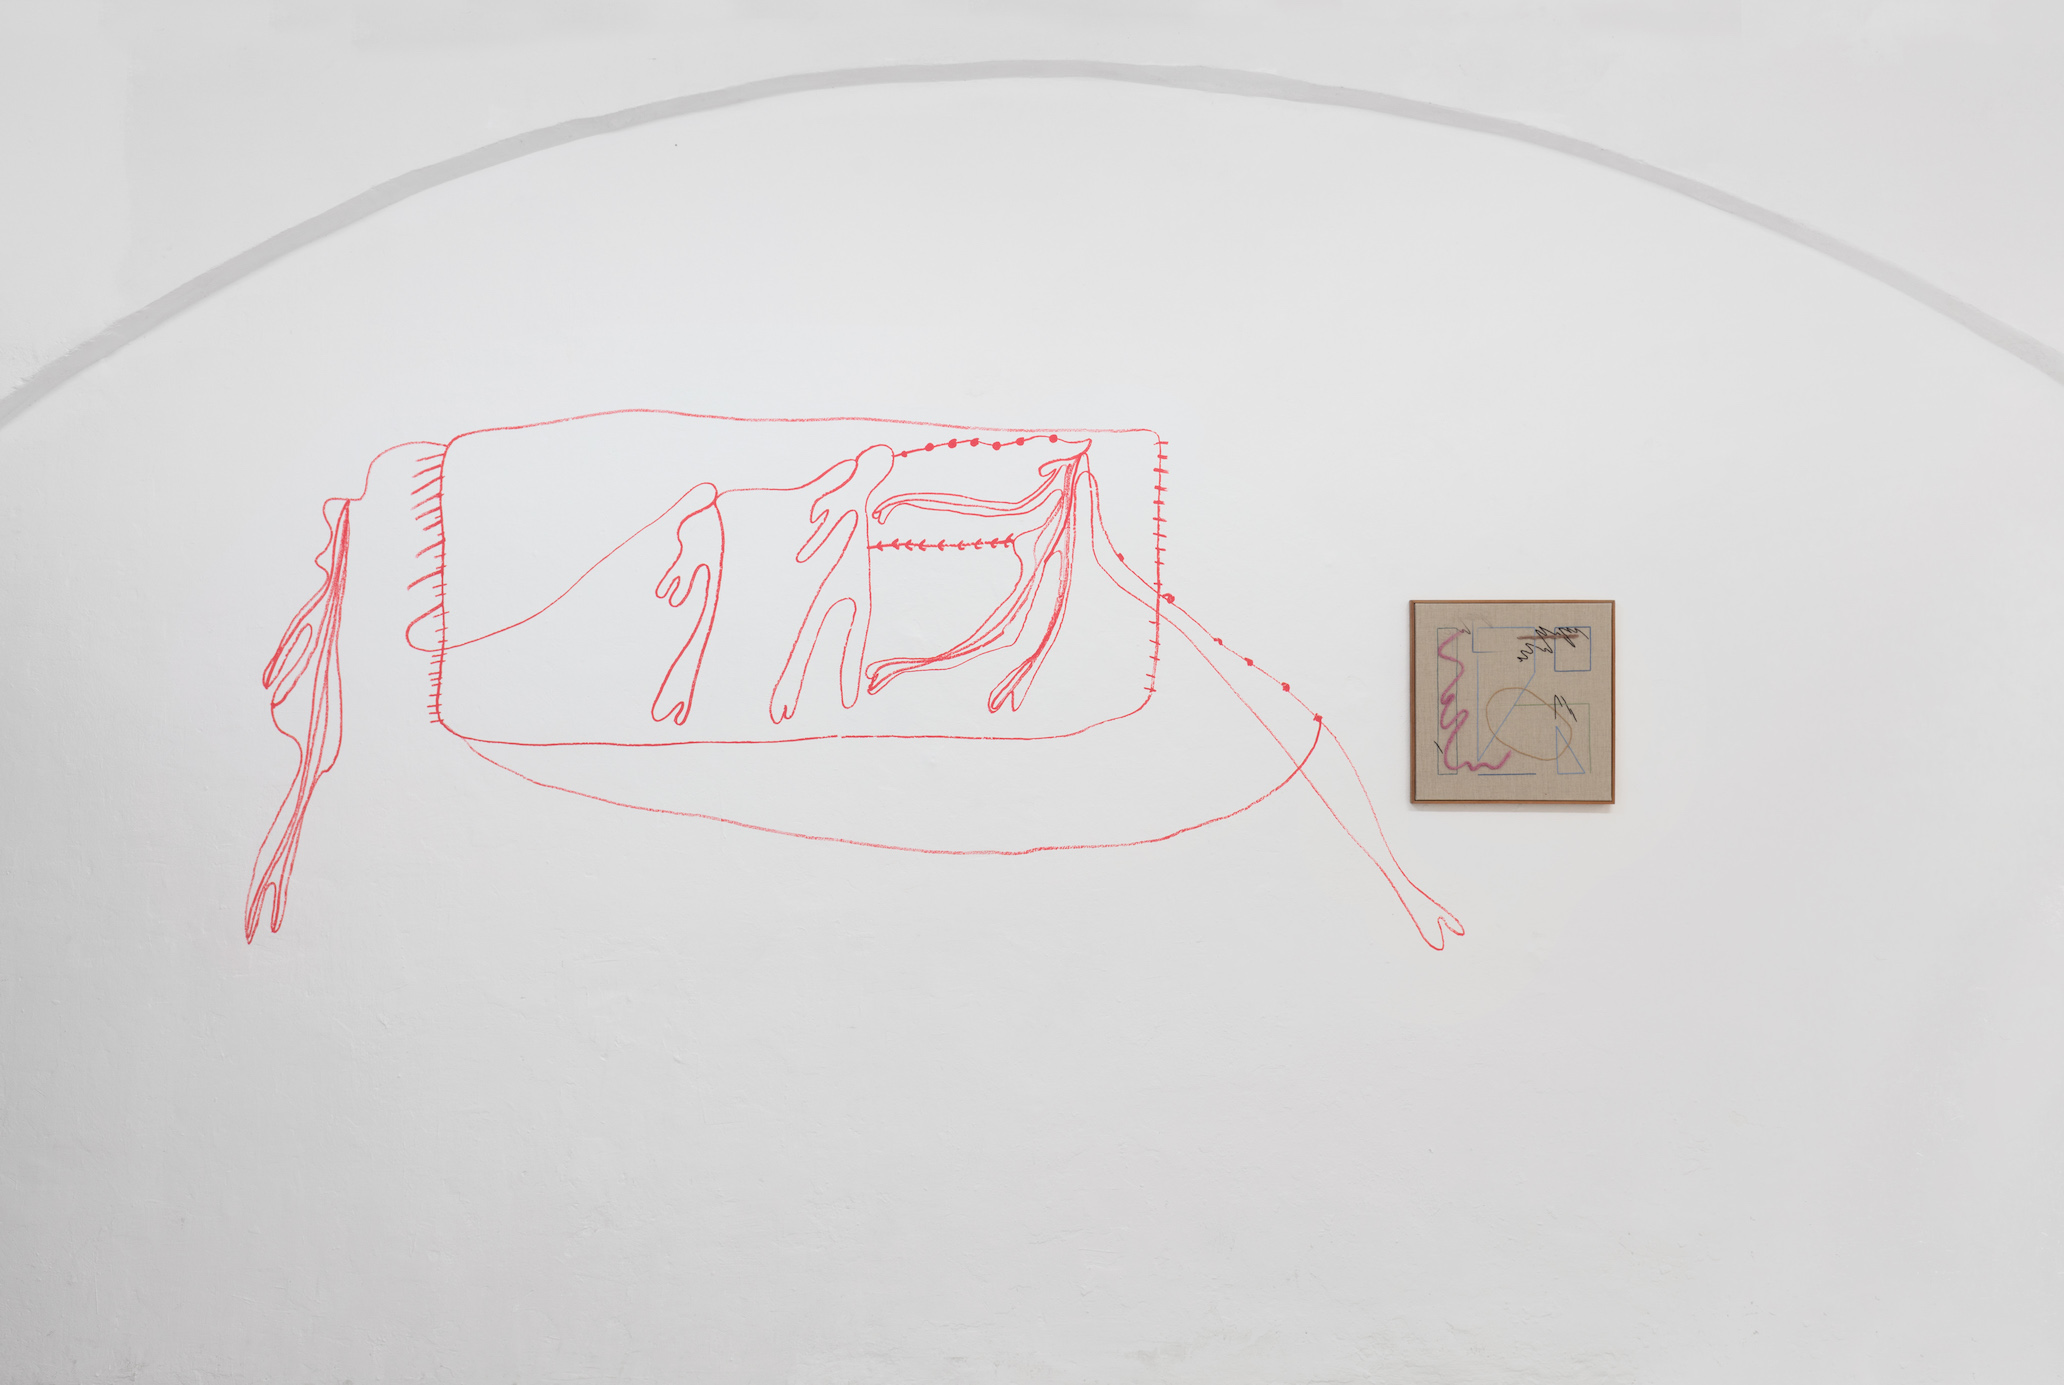 Fatima Moallim, drawing performance; Nadine Byrne, Echoes (20), 2019, Embroidery on linen